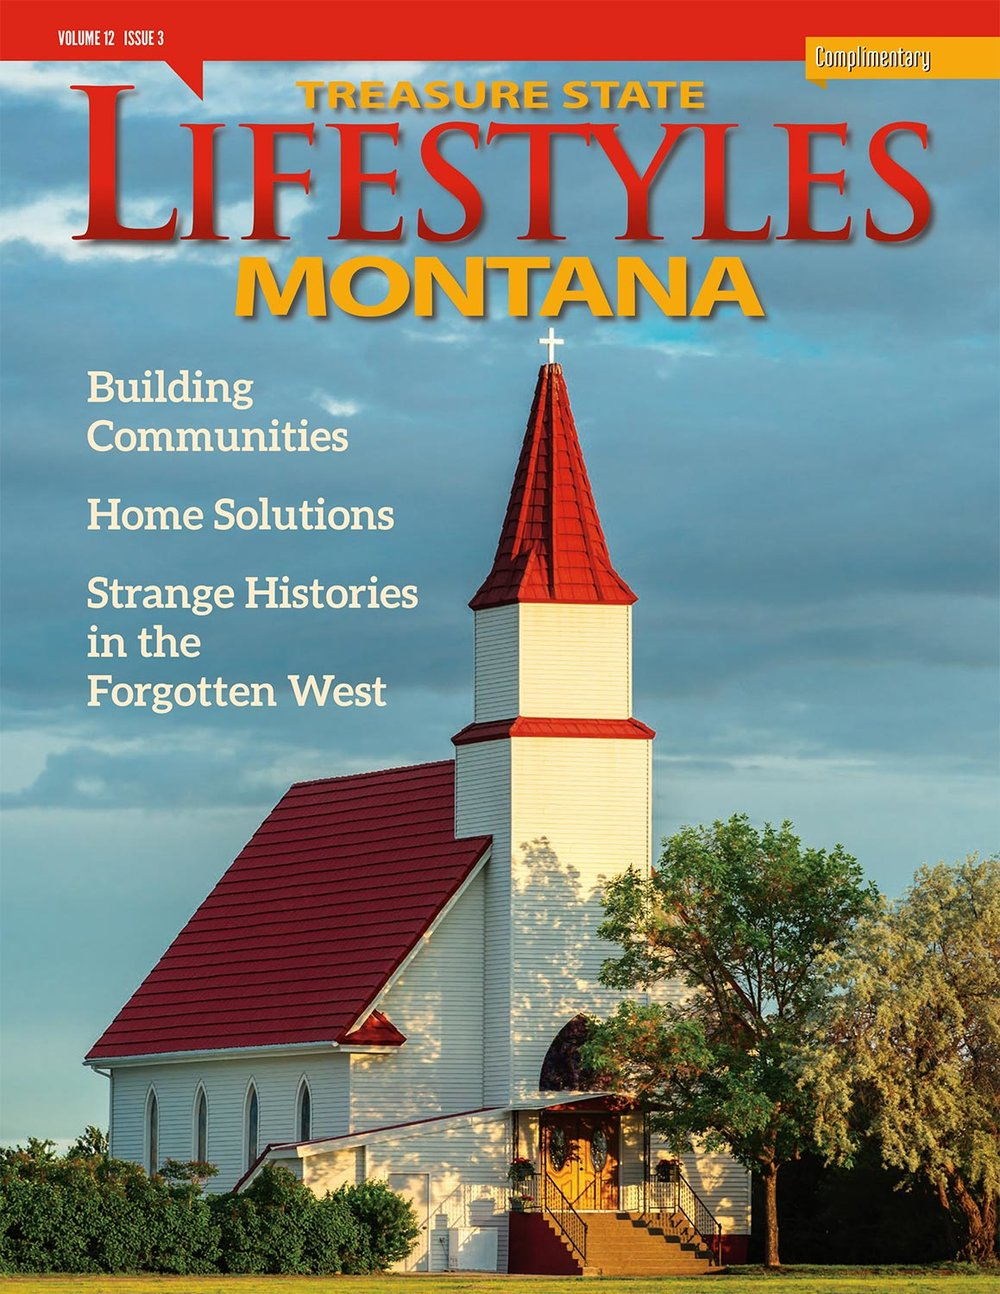 My photograph of the church in Hogeland, Montana appears on the cover of this month's issue of Montana Lifestyles Magazine.